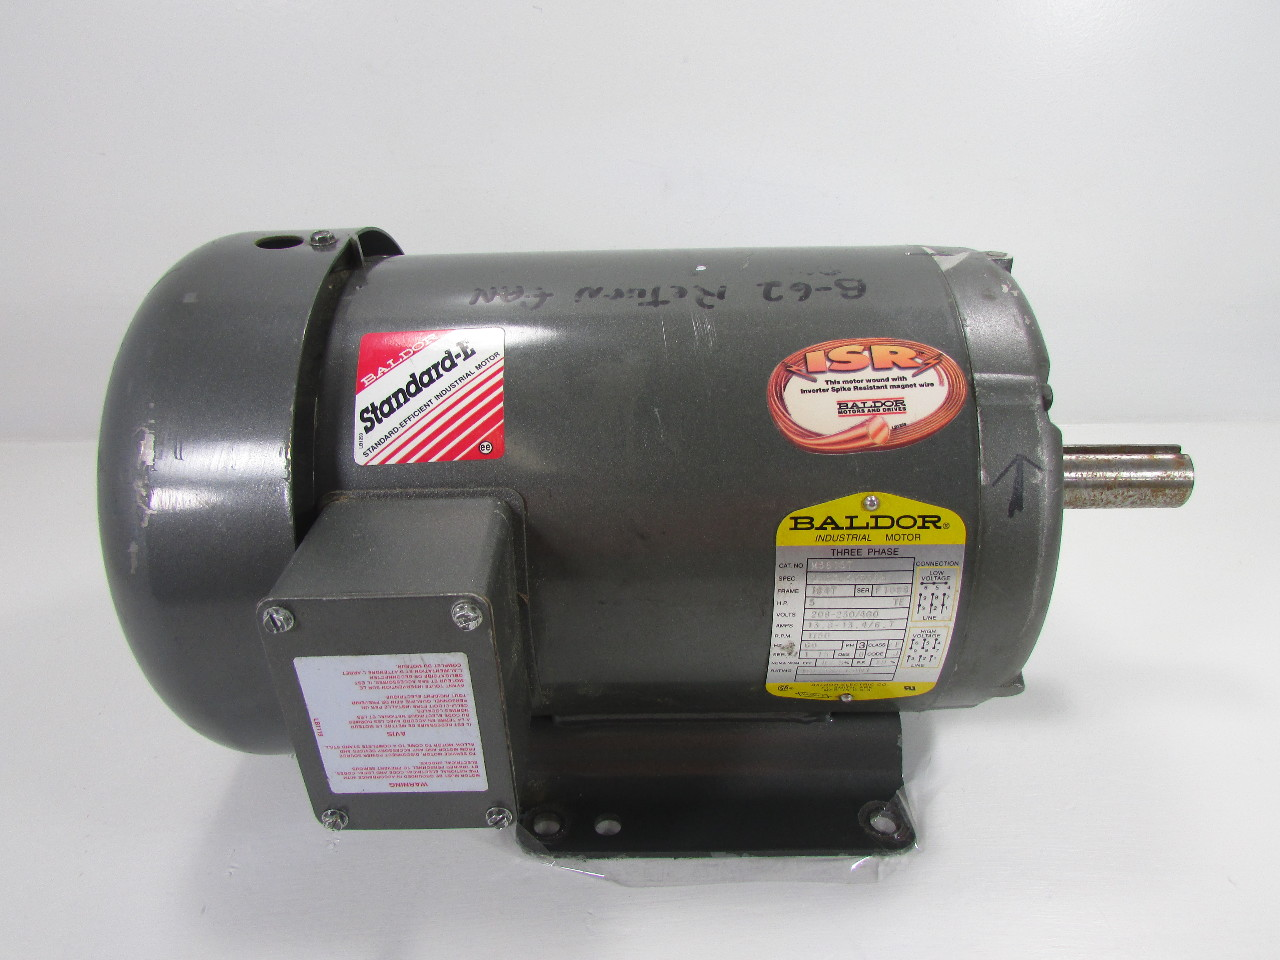 Baldor M3615t 5 Hp 1750 Rpm Electric Motor 3 Phase 230